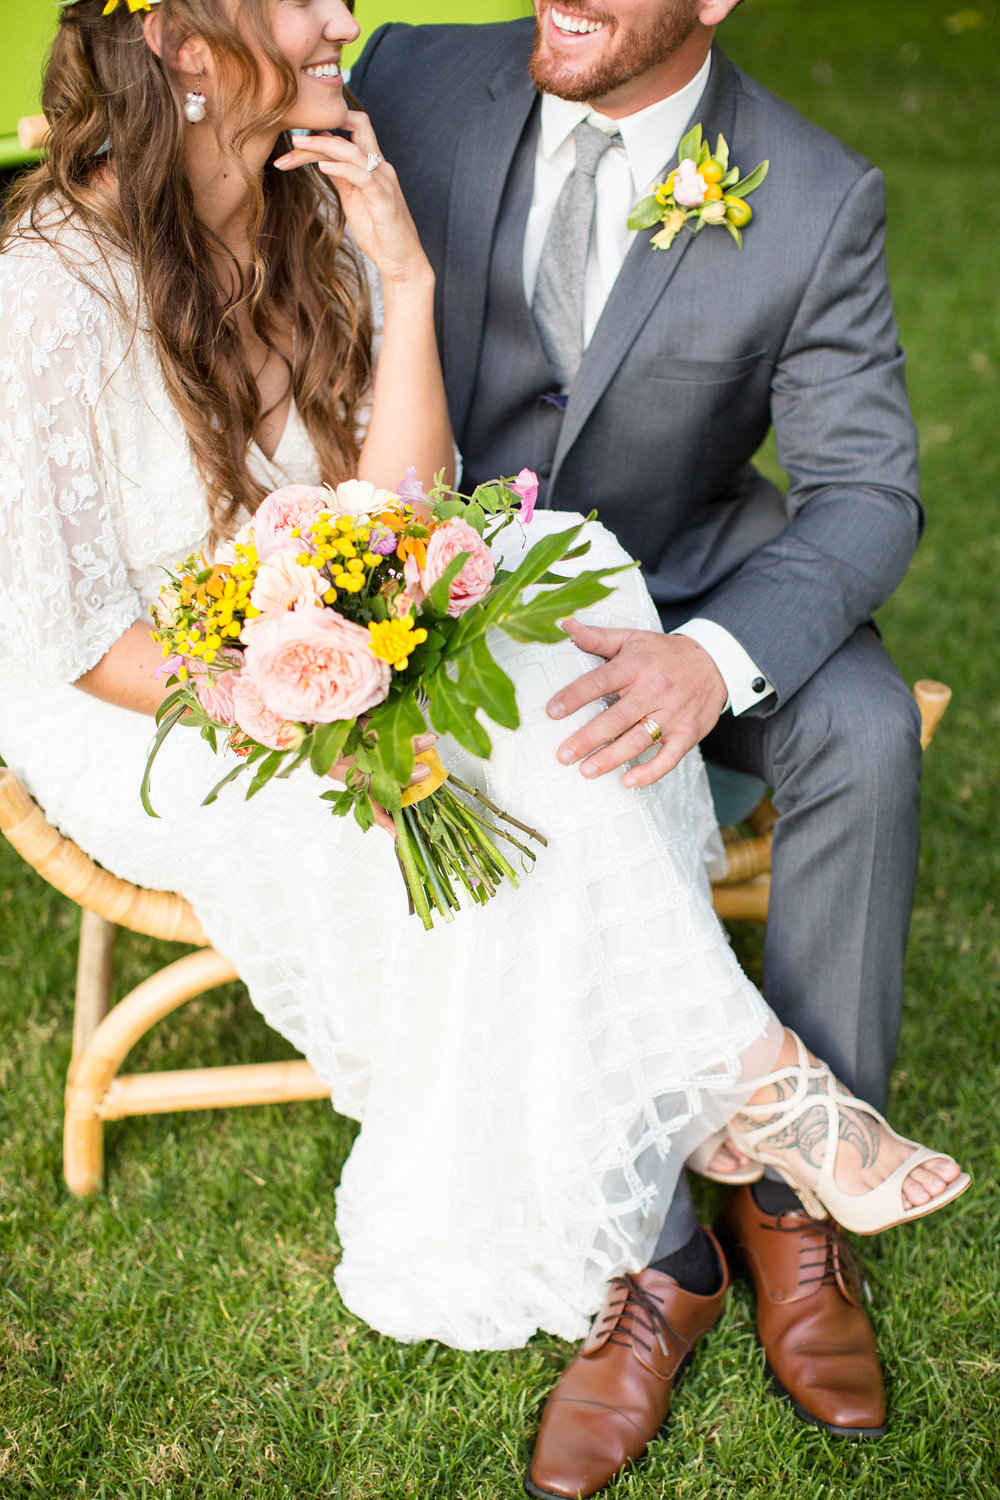 bride and groom sitting together on a chair smiling at each other with tropical bouquet kim baker beauty san jose california makeup artist wedding styled photoshoot at the holly farm in carmel